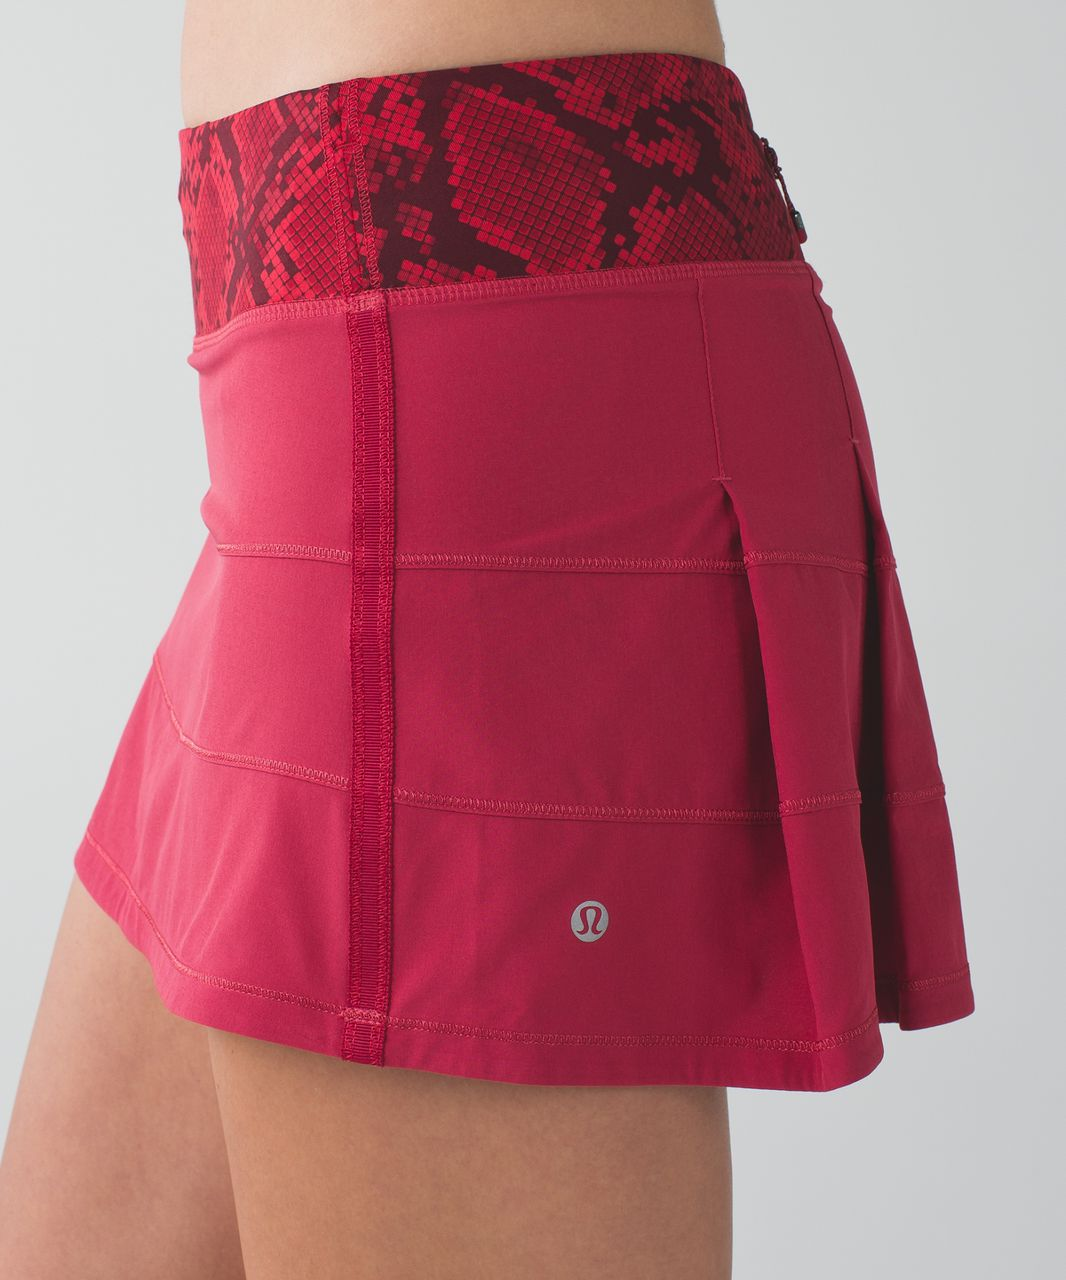 Lululemon Pace Rival Skirt II (Regular) *4-way Stretch - Cranberry / Mini Ziggy Snake Red Tide Cranberry